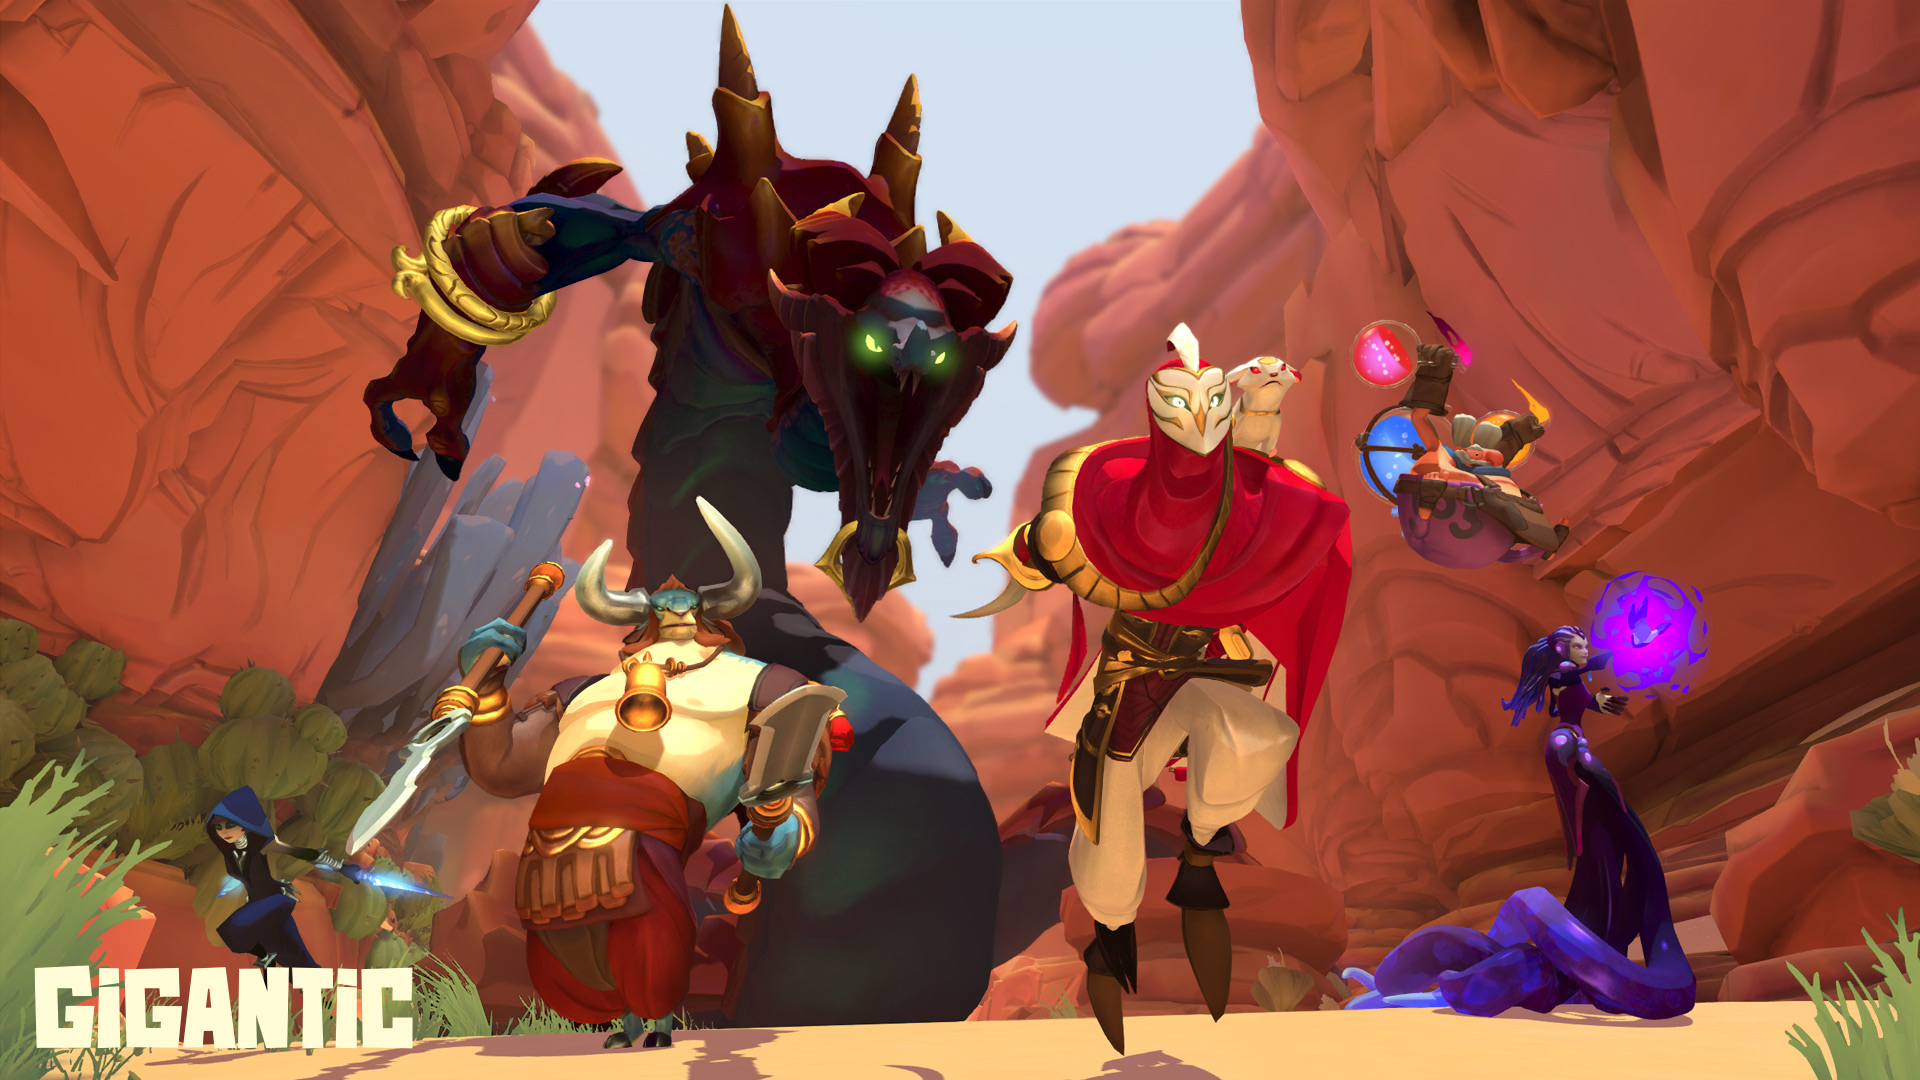 Gigantic shown at E3 2015